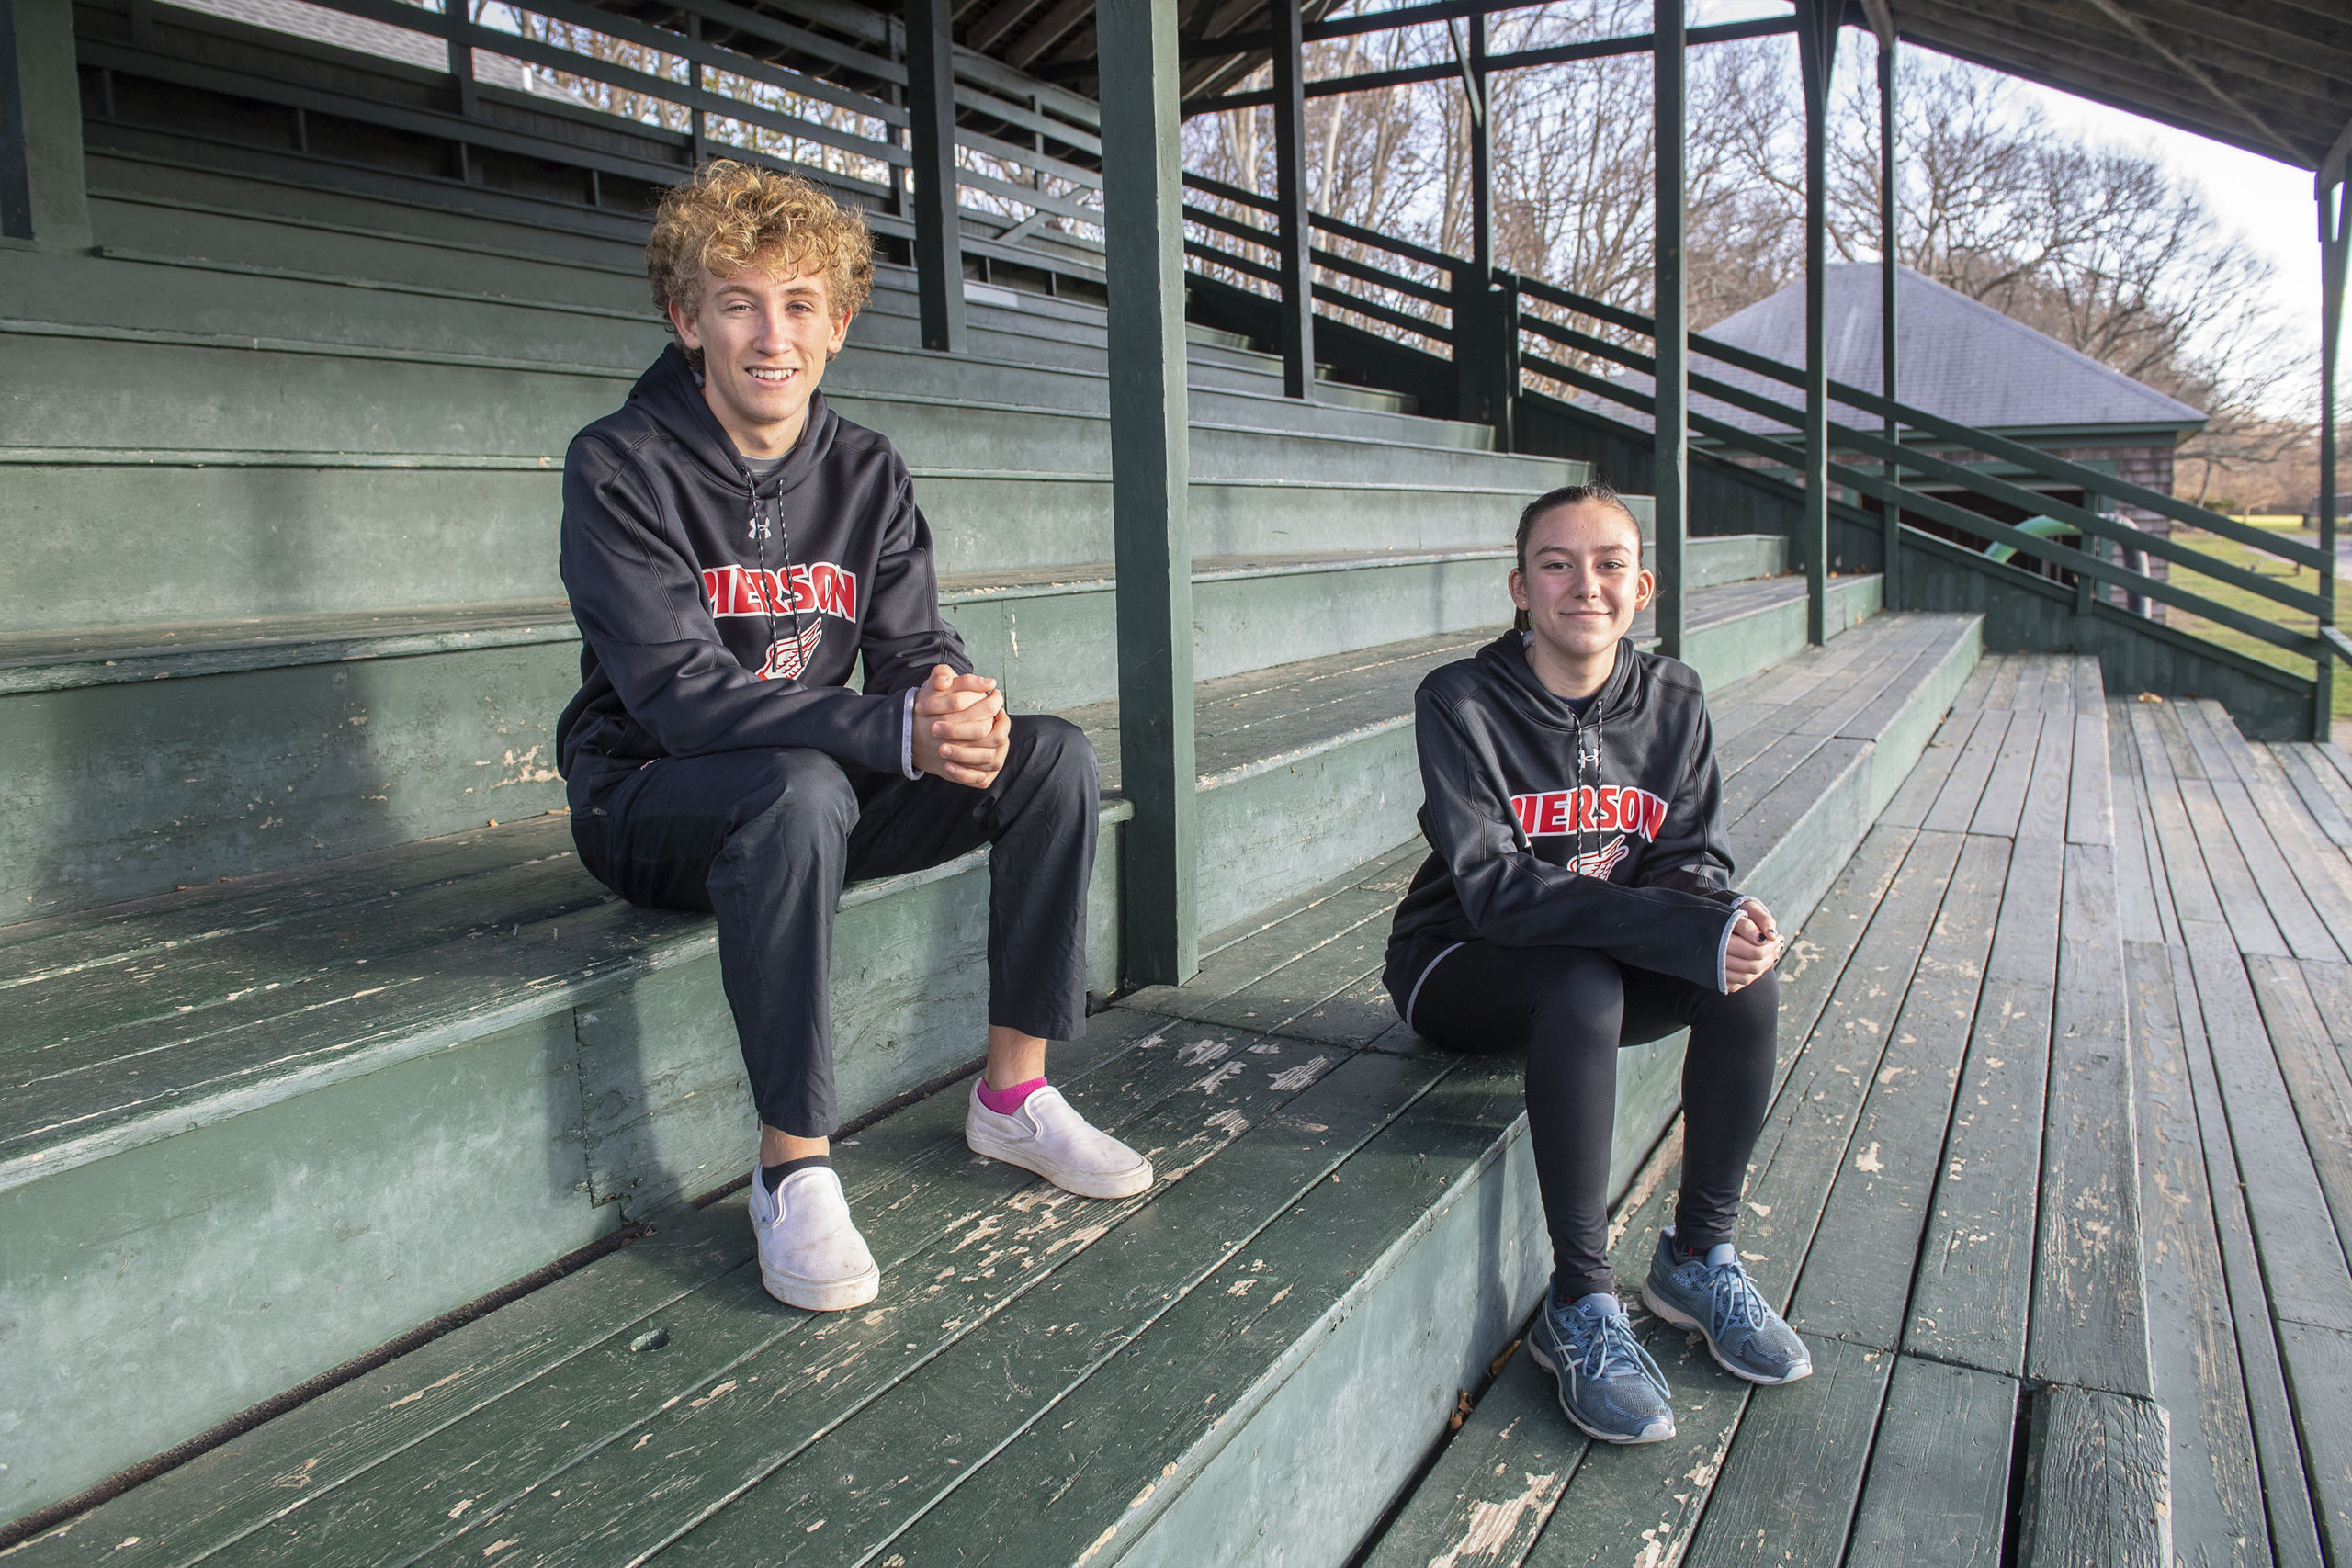 Pierson Cross Country runners Ben McErlean and Penelope Greene, photographed at Mashashimuet Park on Monday.    MICHAEL HELLER